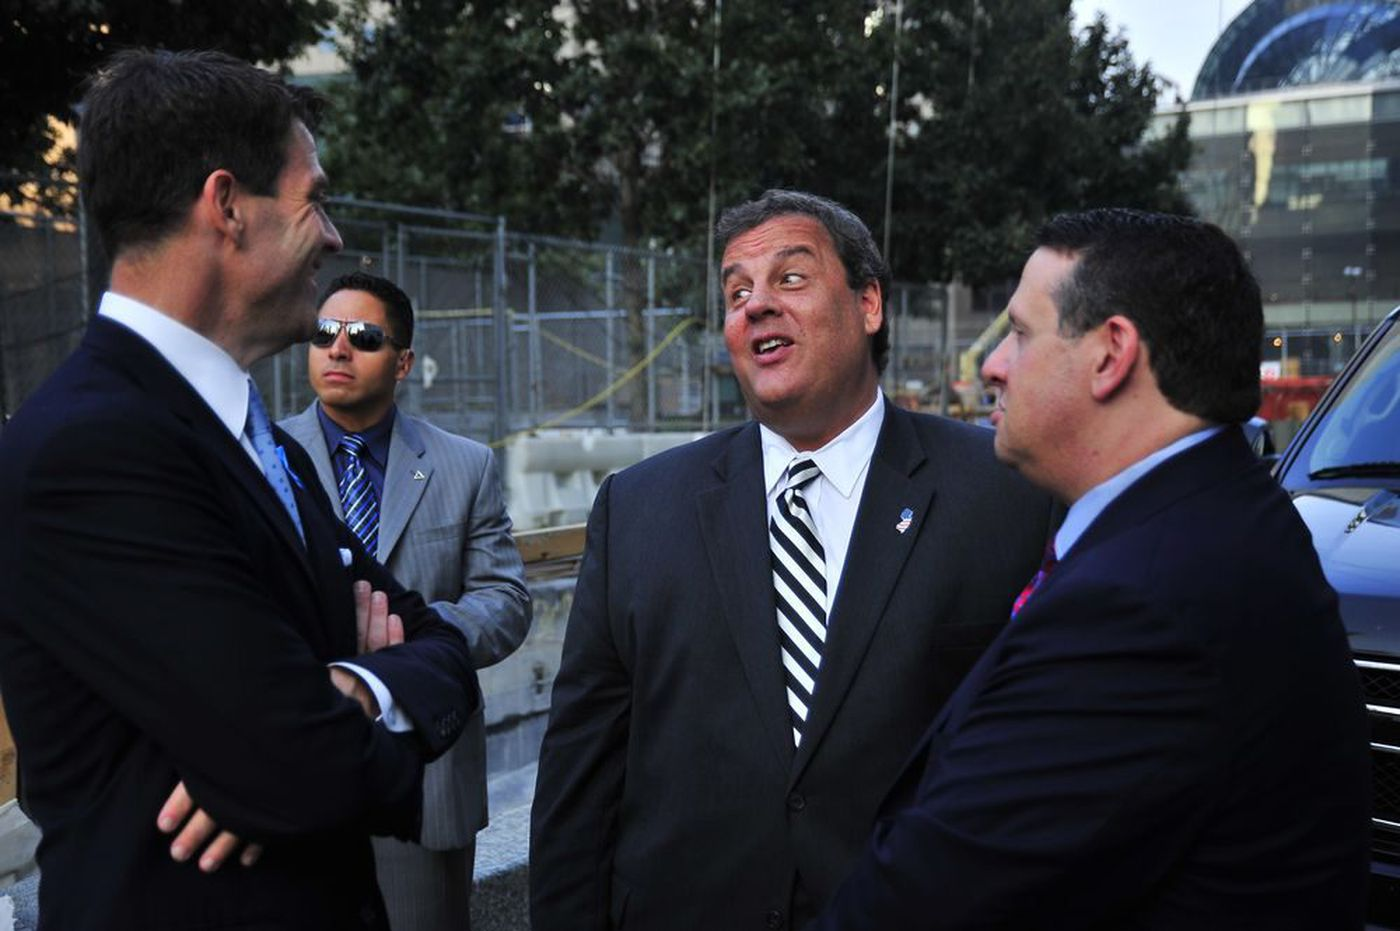 Feds recommend probation for Bridgegate plotter Wildstein